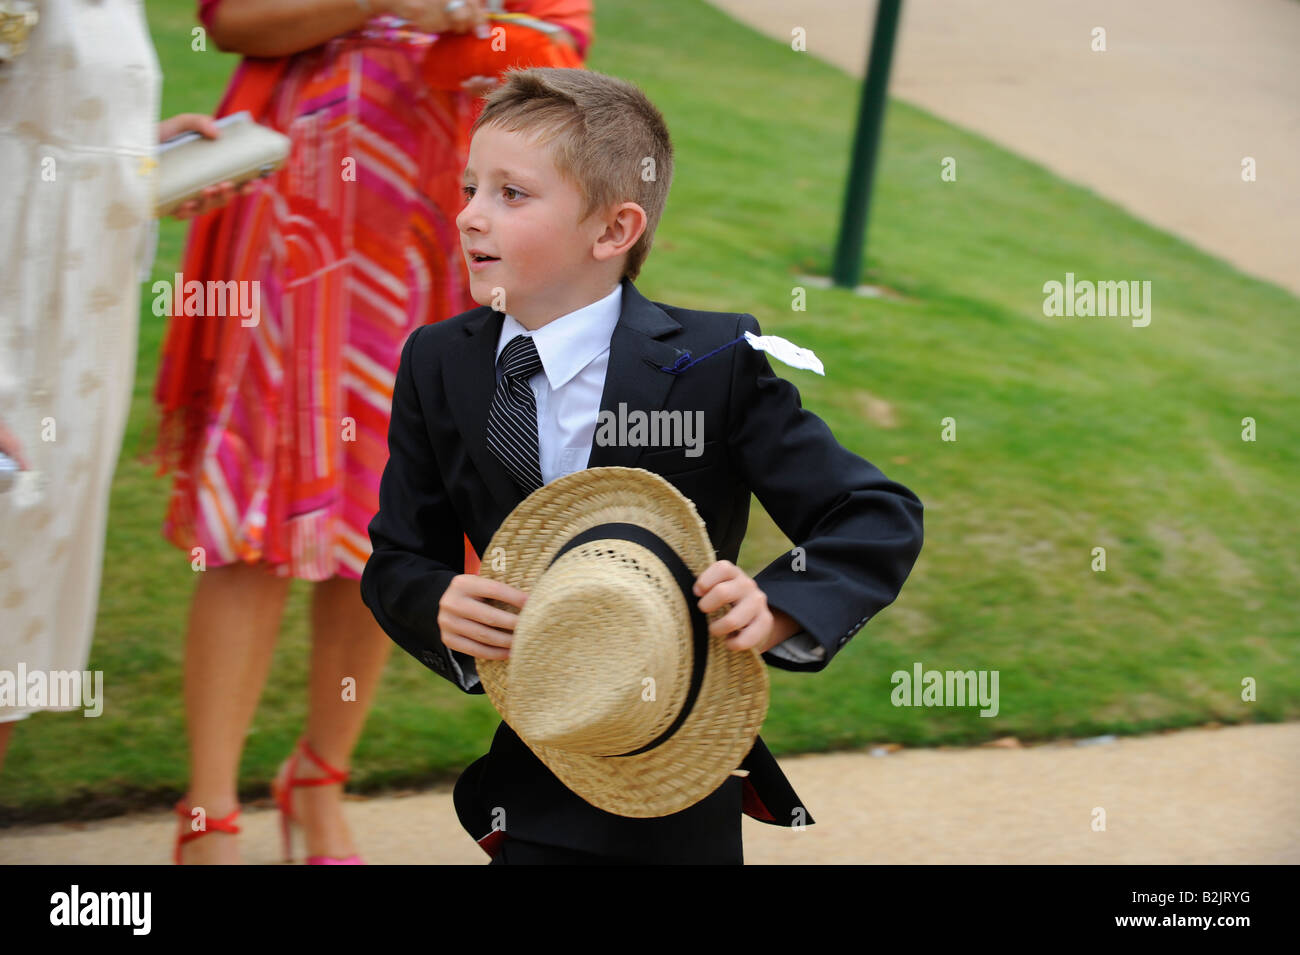 Glorious Goodwood ladies day -  a young boy running holding his straw boater. - Stock Image